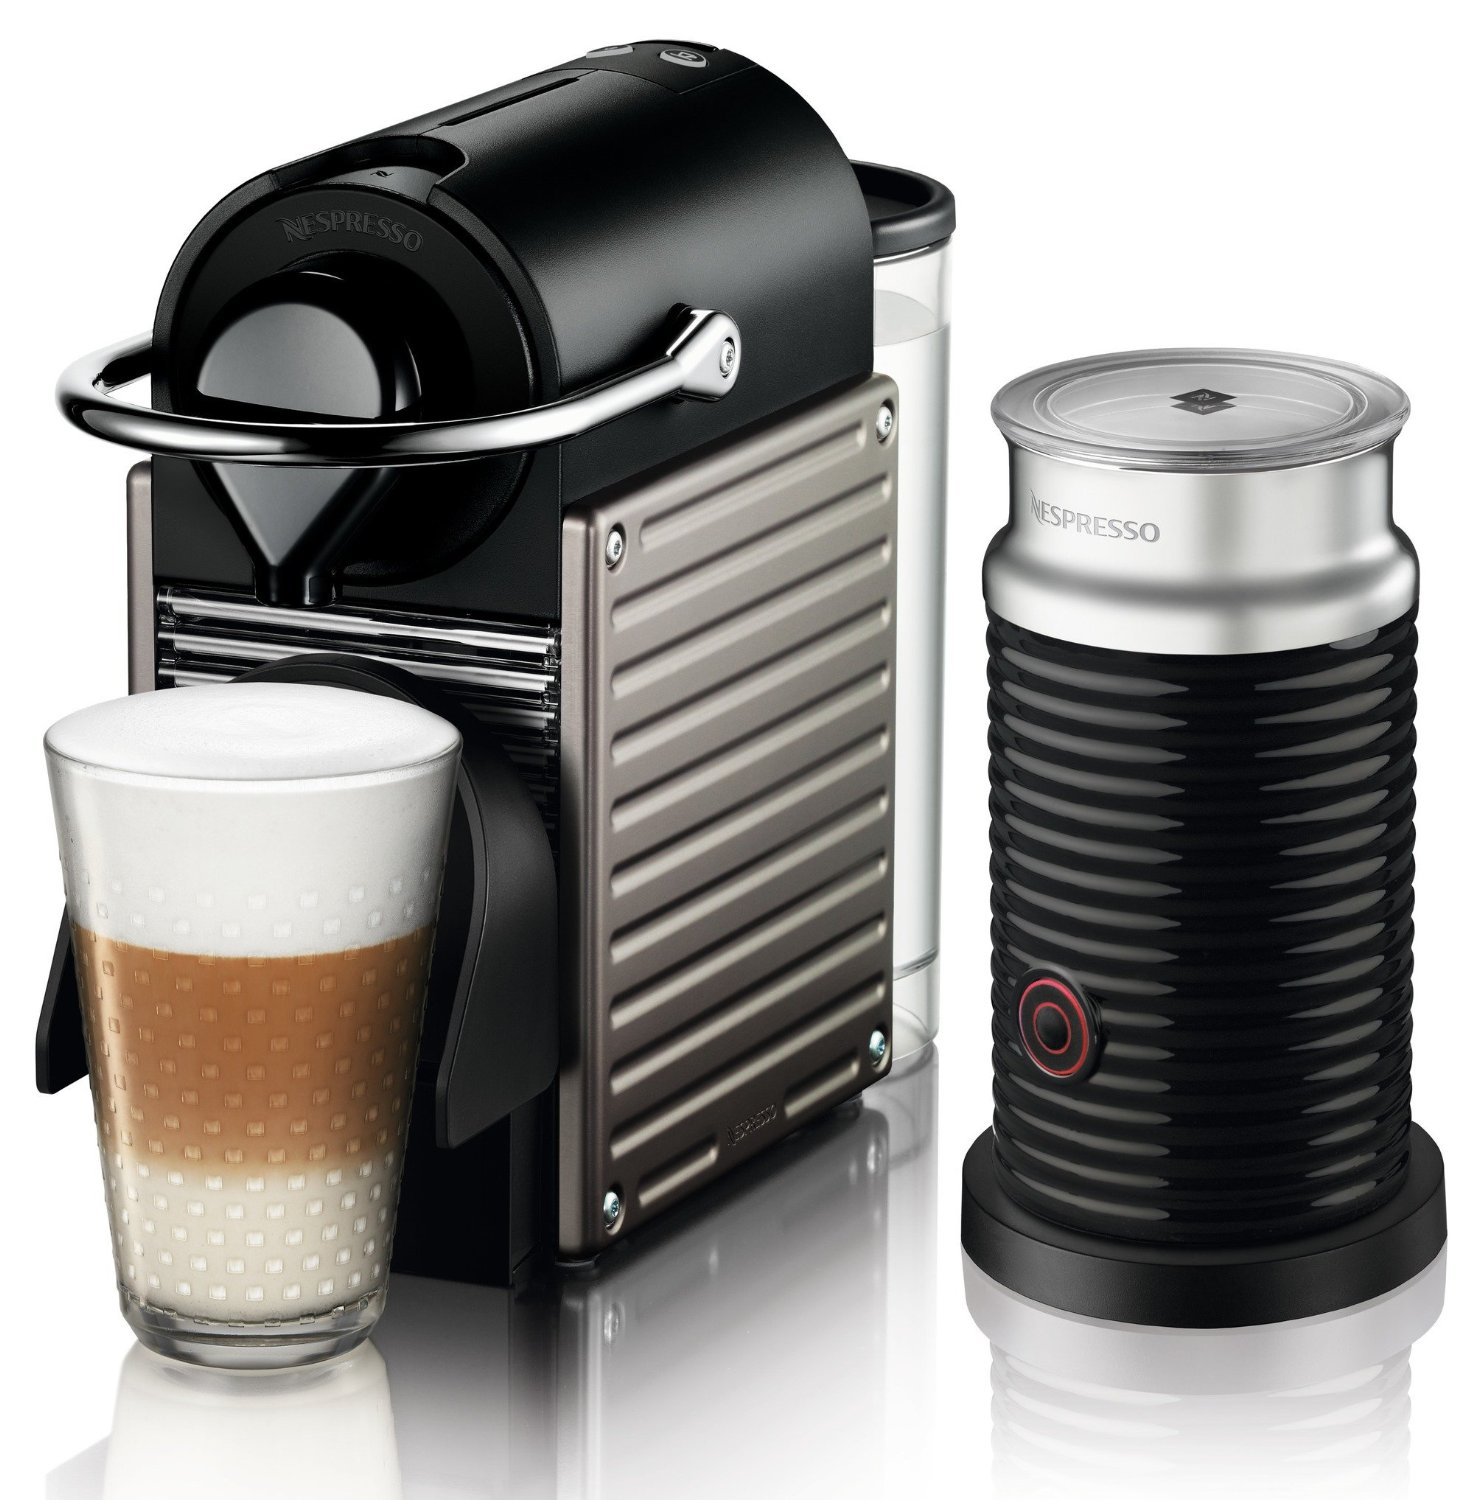 versch kaffee maschinen z b krups nespresso pixie 100 kapseln mytopdeals. Black Bedroom Furniture Sets. Home Design Ideas